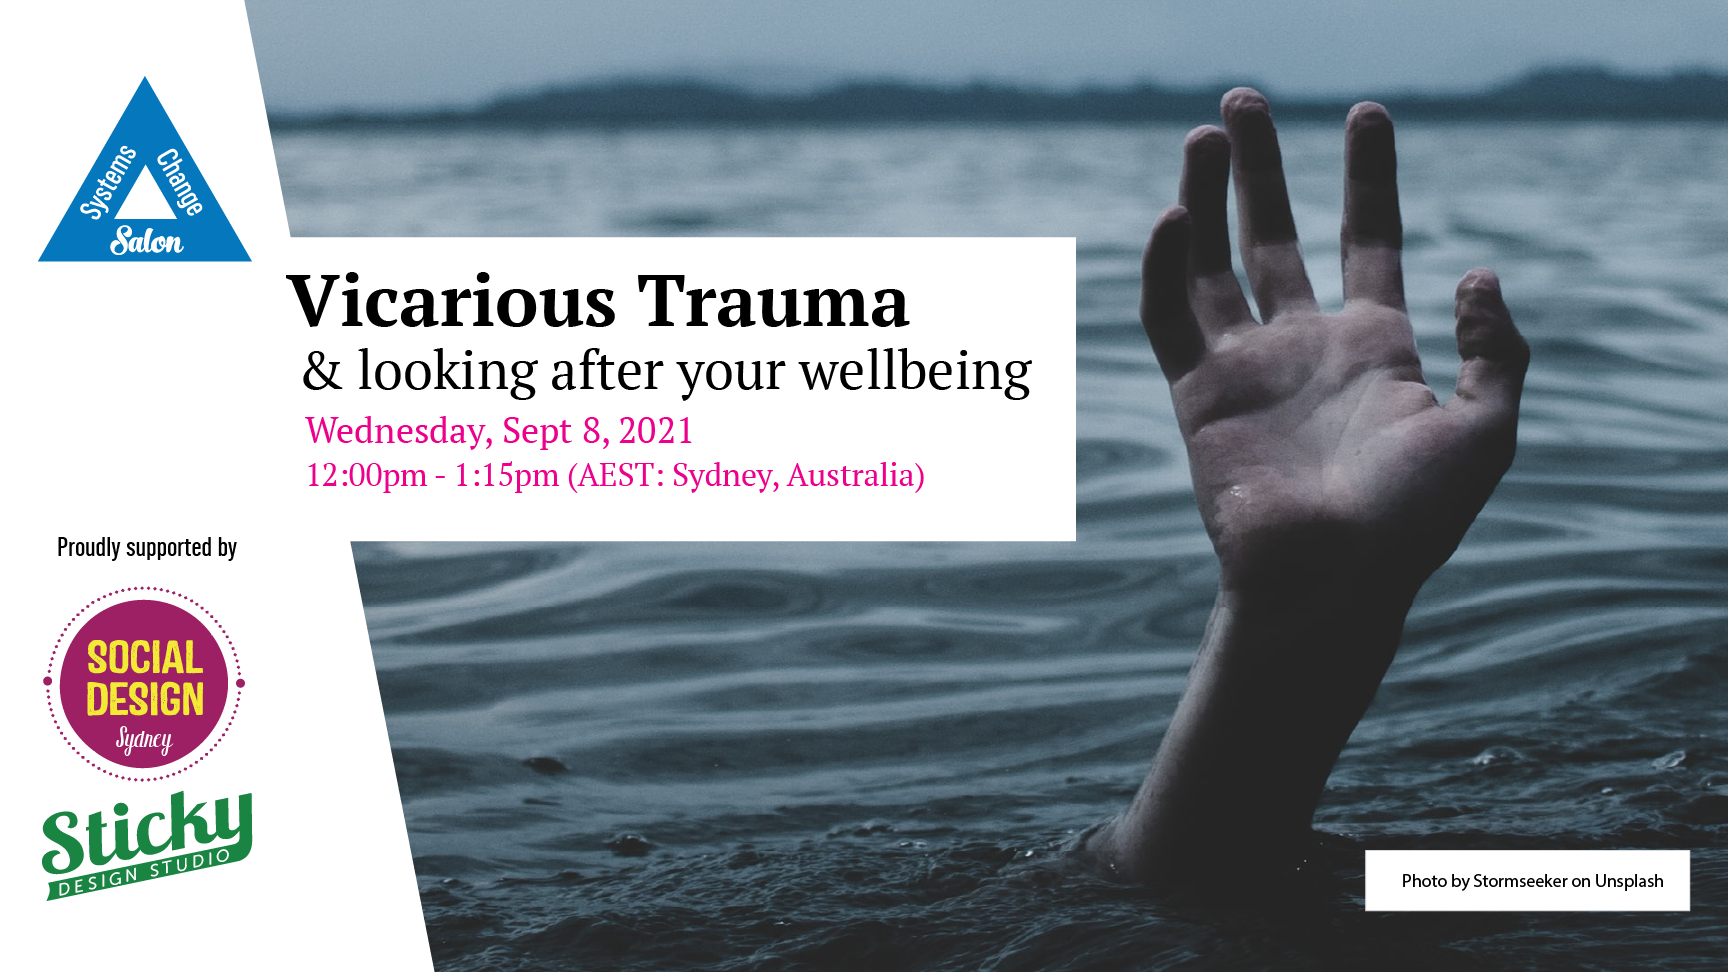 Vicarious Trauma : Looking after your wellbeing